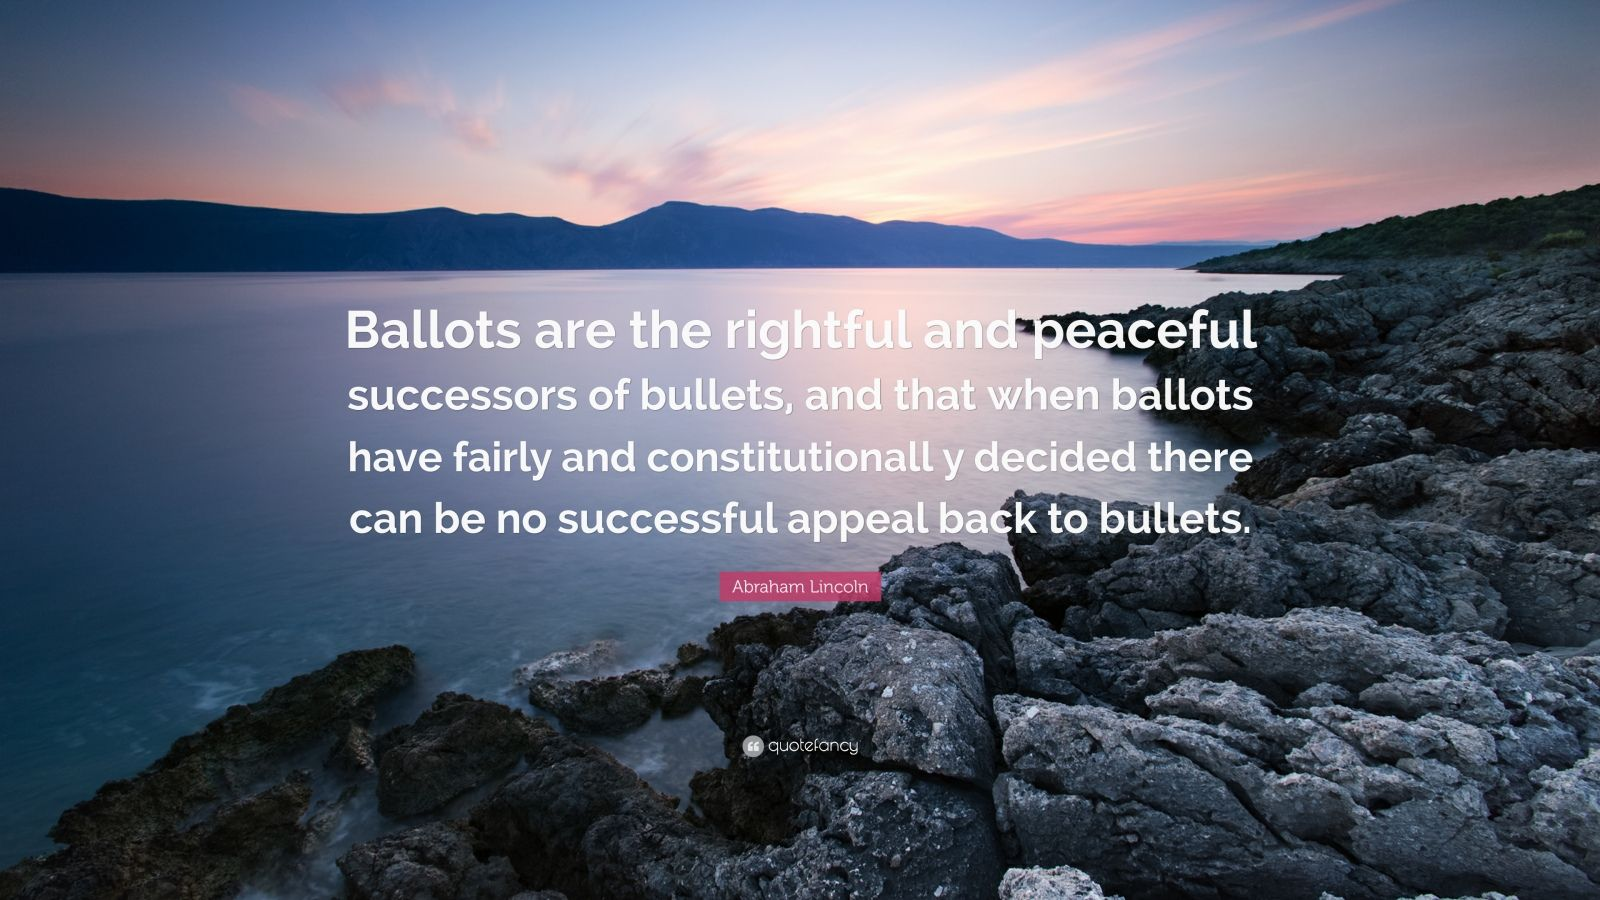 """Abraham Lincoln Quote: """"Ballots are the rightful and peaceful successors of bullets, and that when ballots have fairly and constitutionall y decided there can be no successful appeal back to bullets."""""""